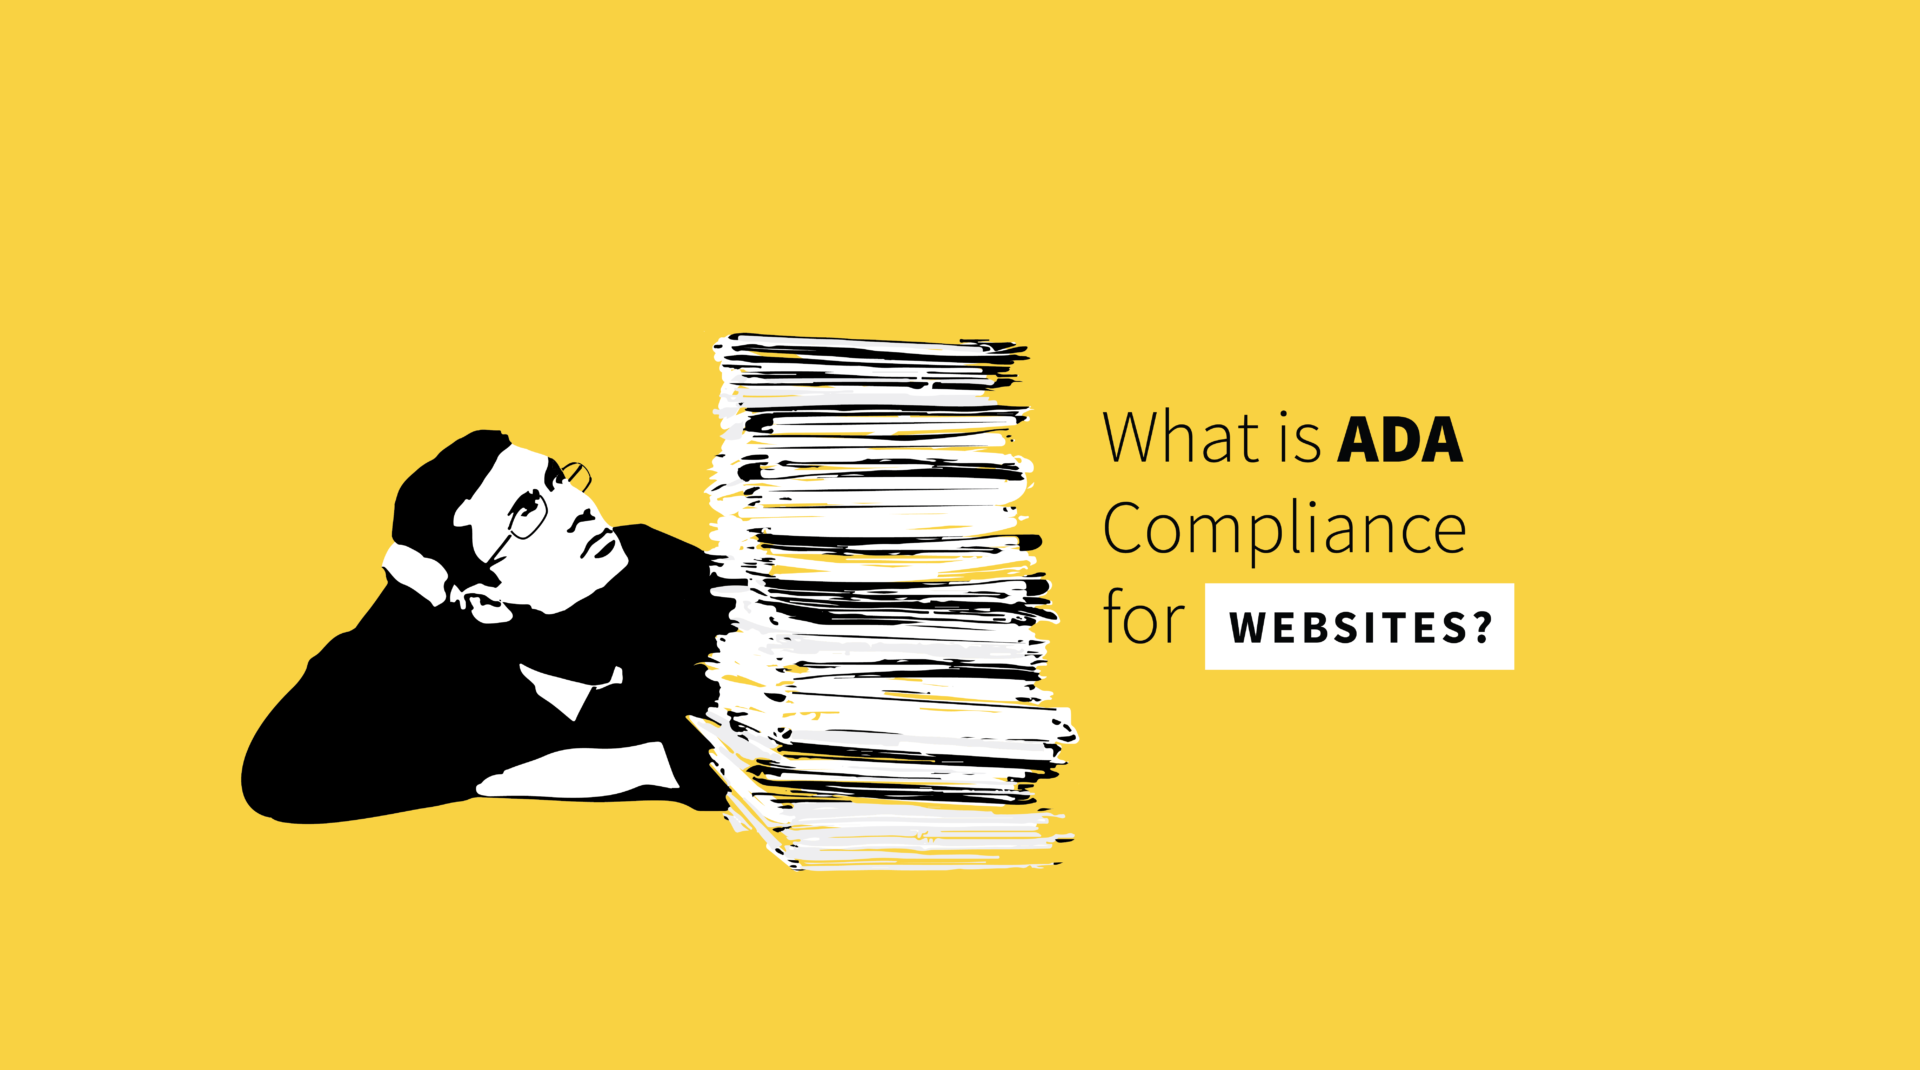 What is ADA Compliance for Websites